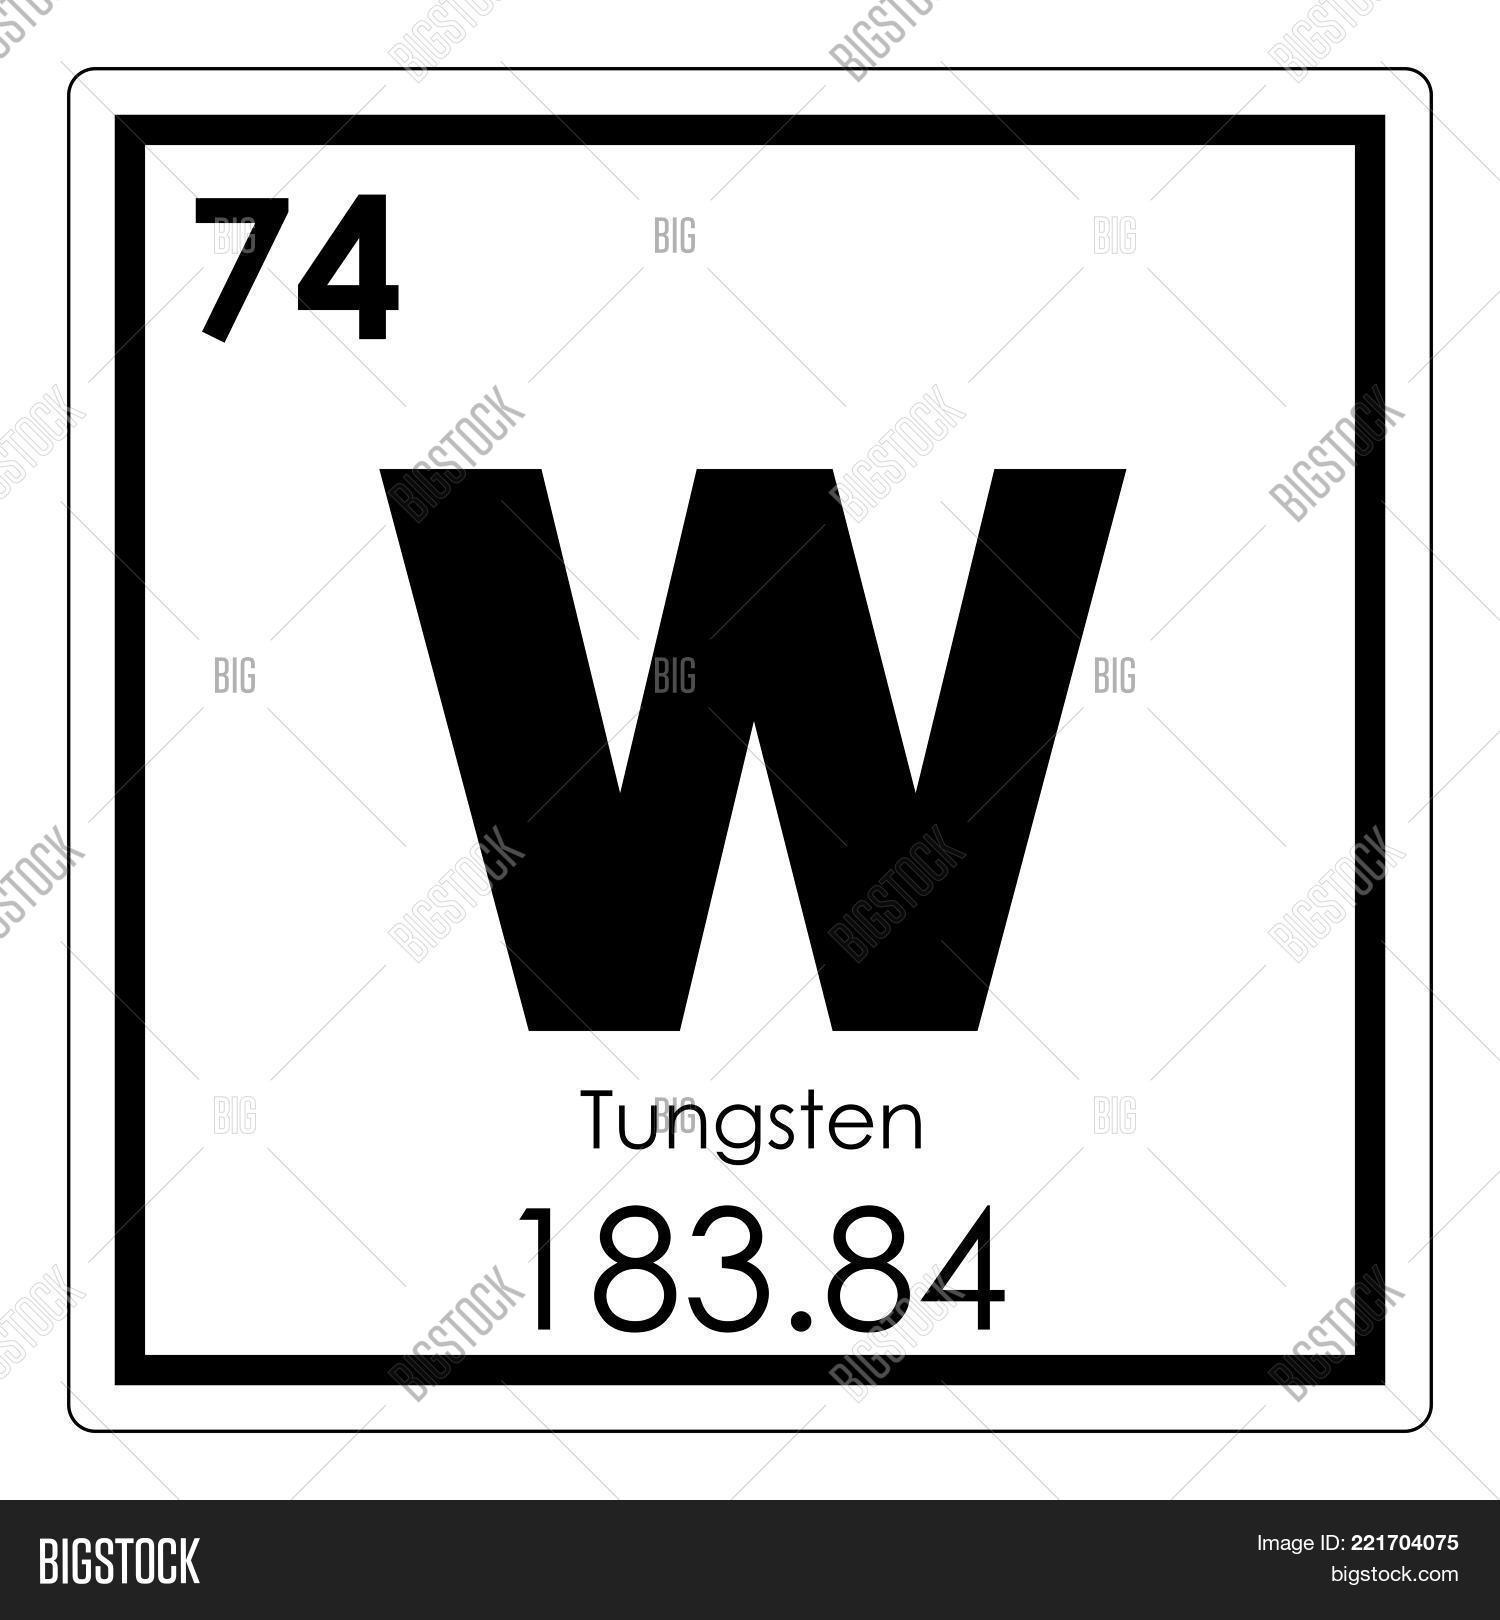 Tungsten Chemical Image Photo Free Trial Bigstock